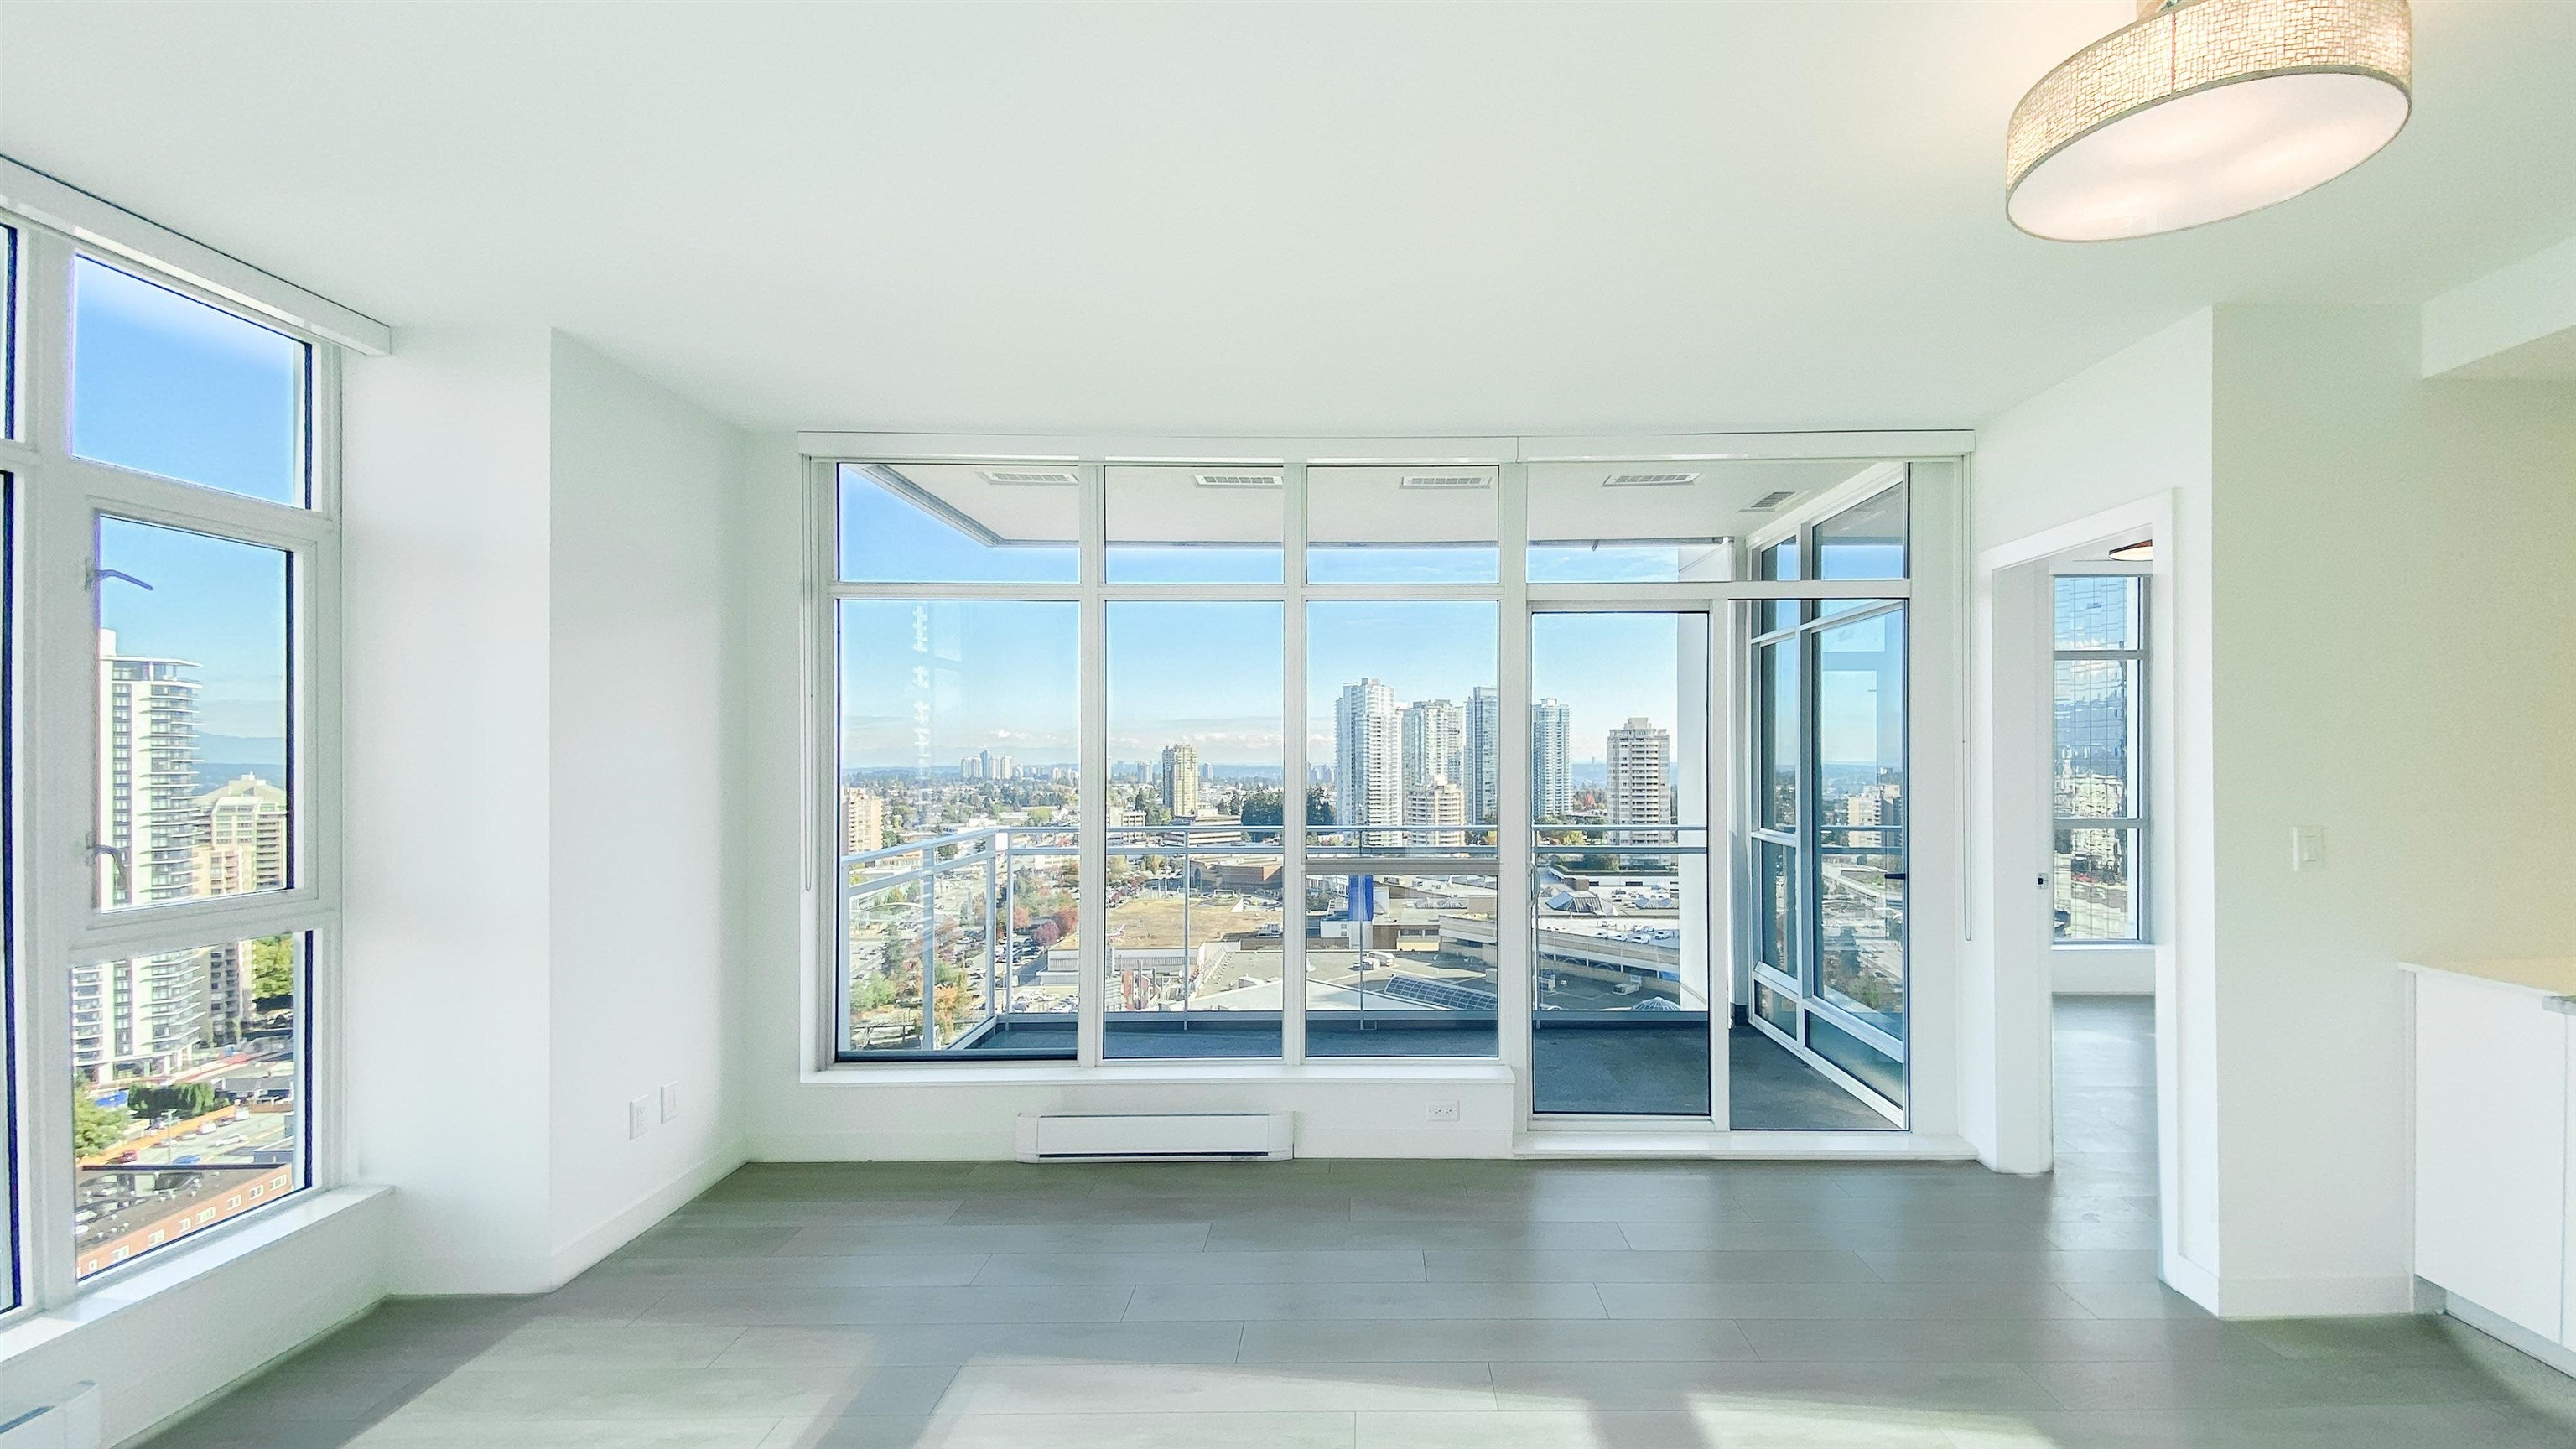 2510 4670 ASSEMBLY WAY - Metrotown Apartment/Condo for sale, 2 Bedrooms (R2625732) - #8